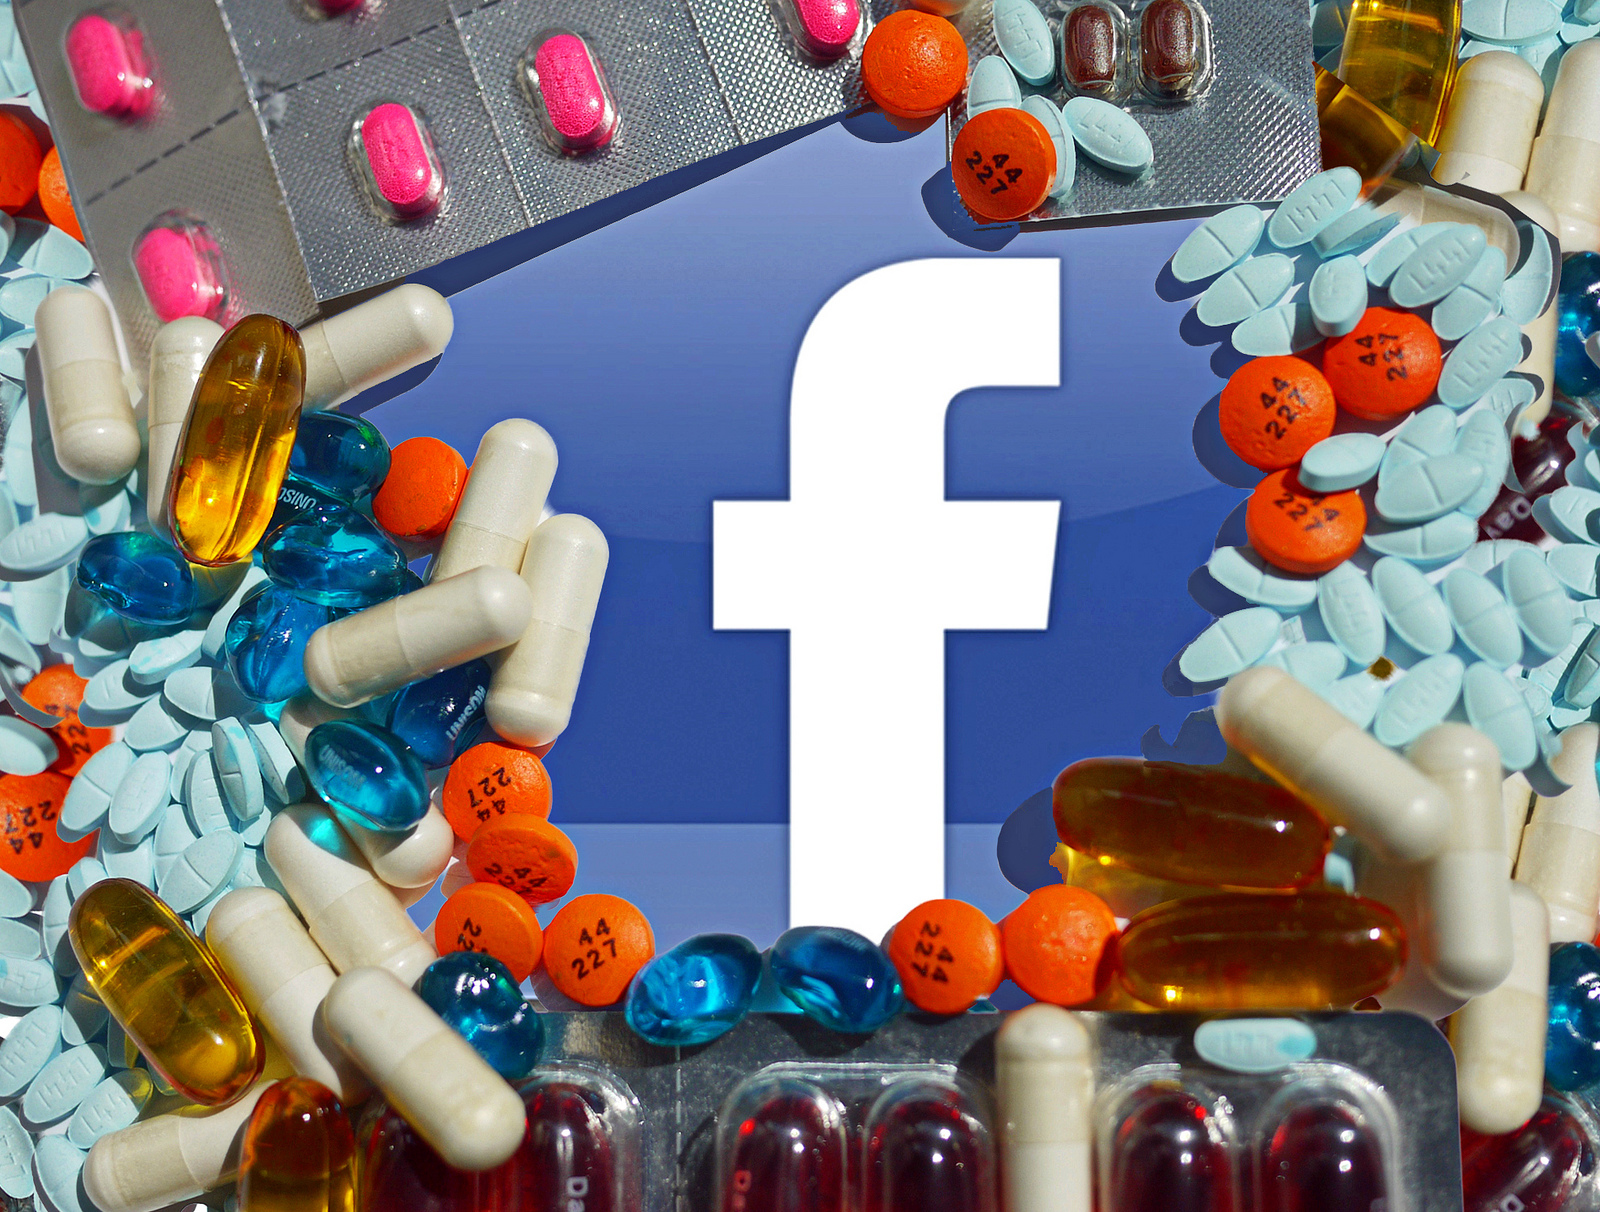 A lower case f (the Facebook logo) surrounded by a collection of pills and tablets.